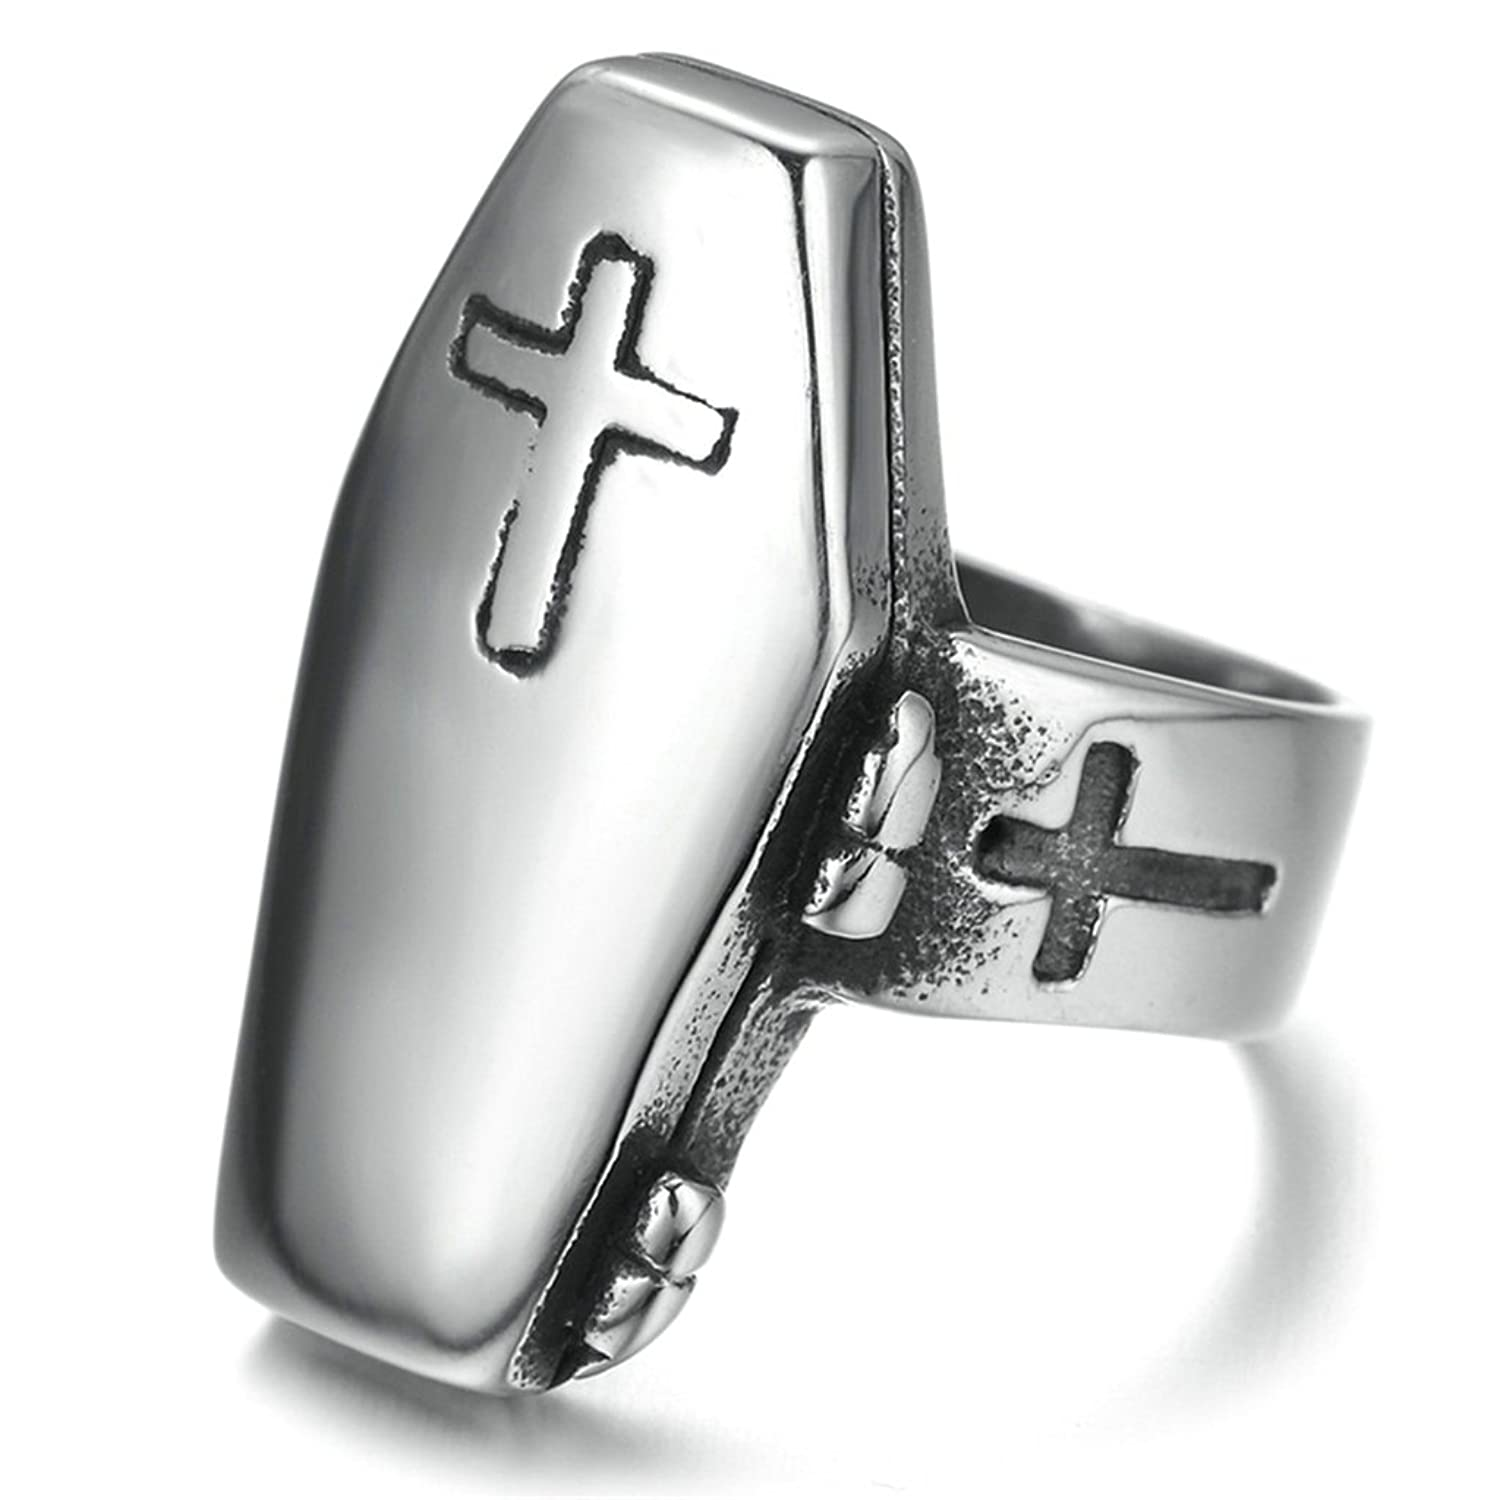 Gnzoe Men Stainless Steel Ring Retro Men Coffin Rings with Cross,Silver